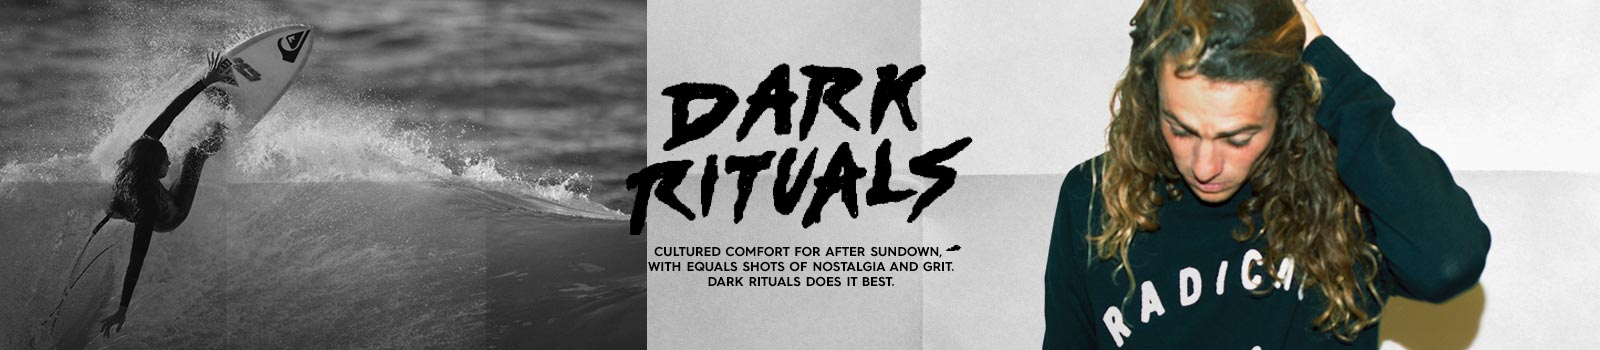 collections-dark-rituals-banner